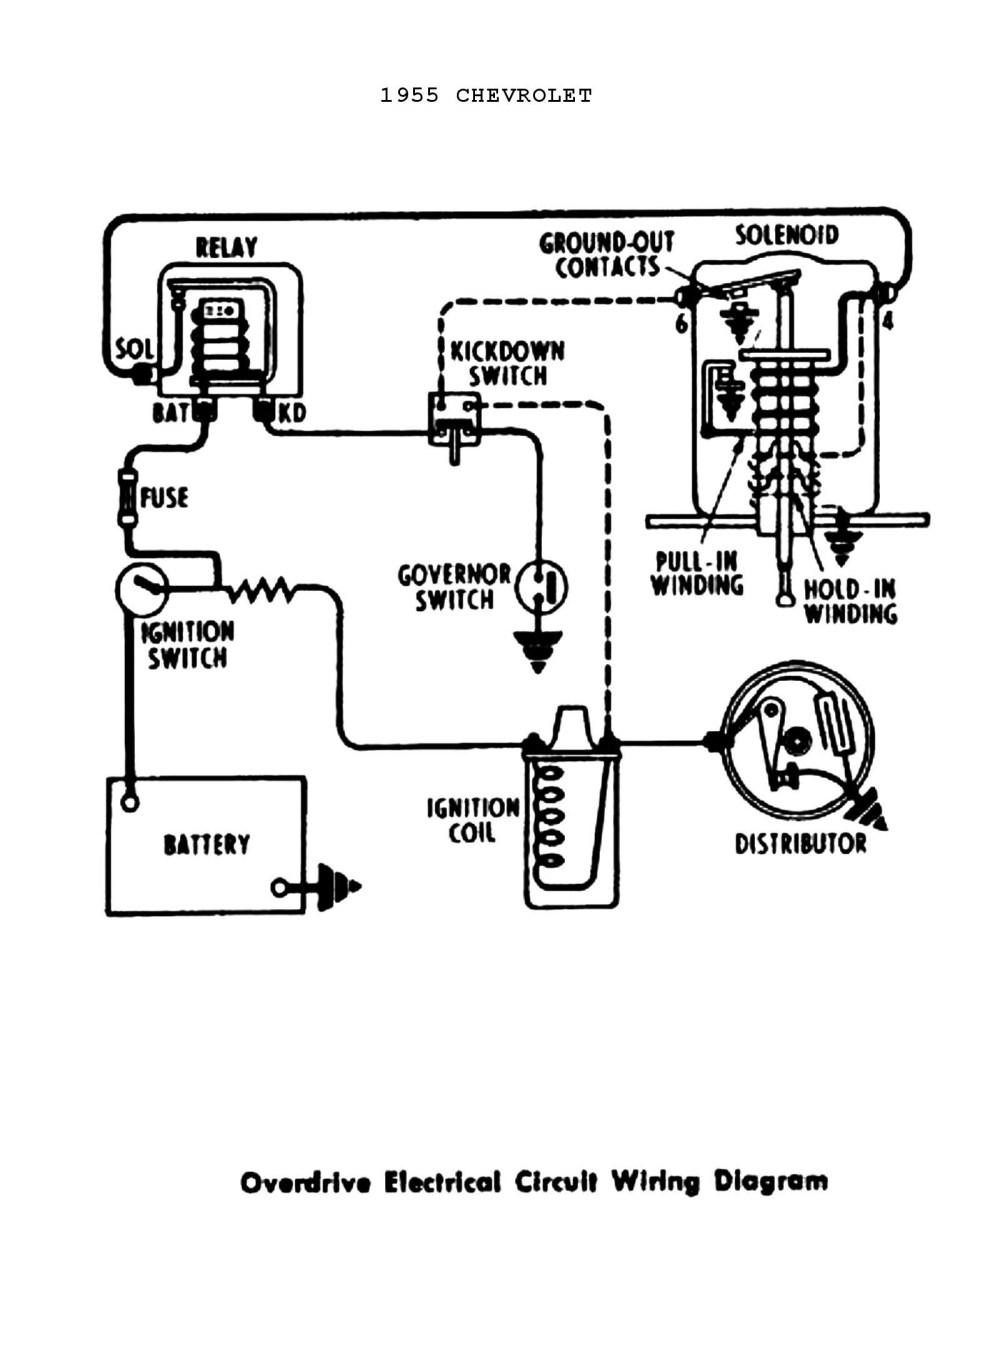 medium resolution of gm alternator wiring schematic wiring diagram for gm light switch best wiring diagram for alternator